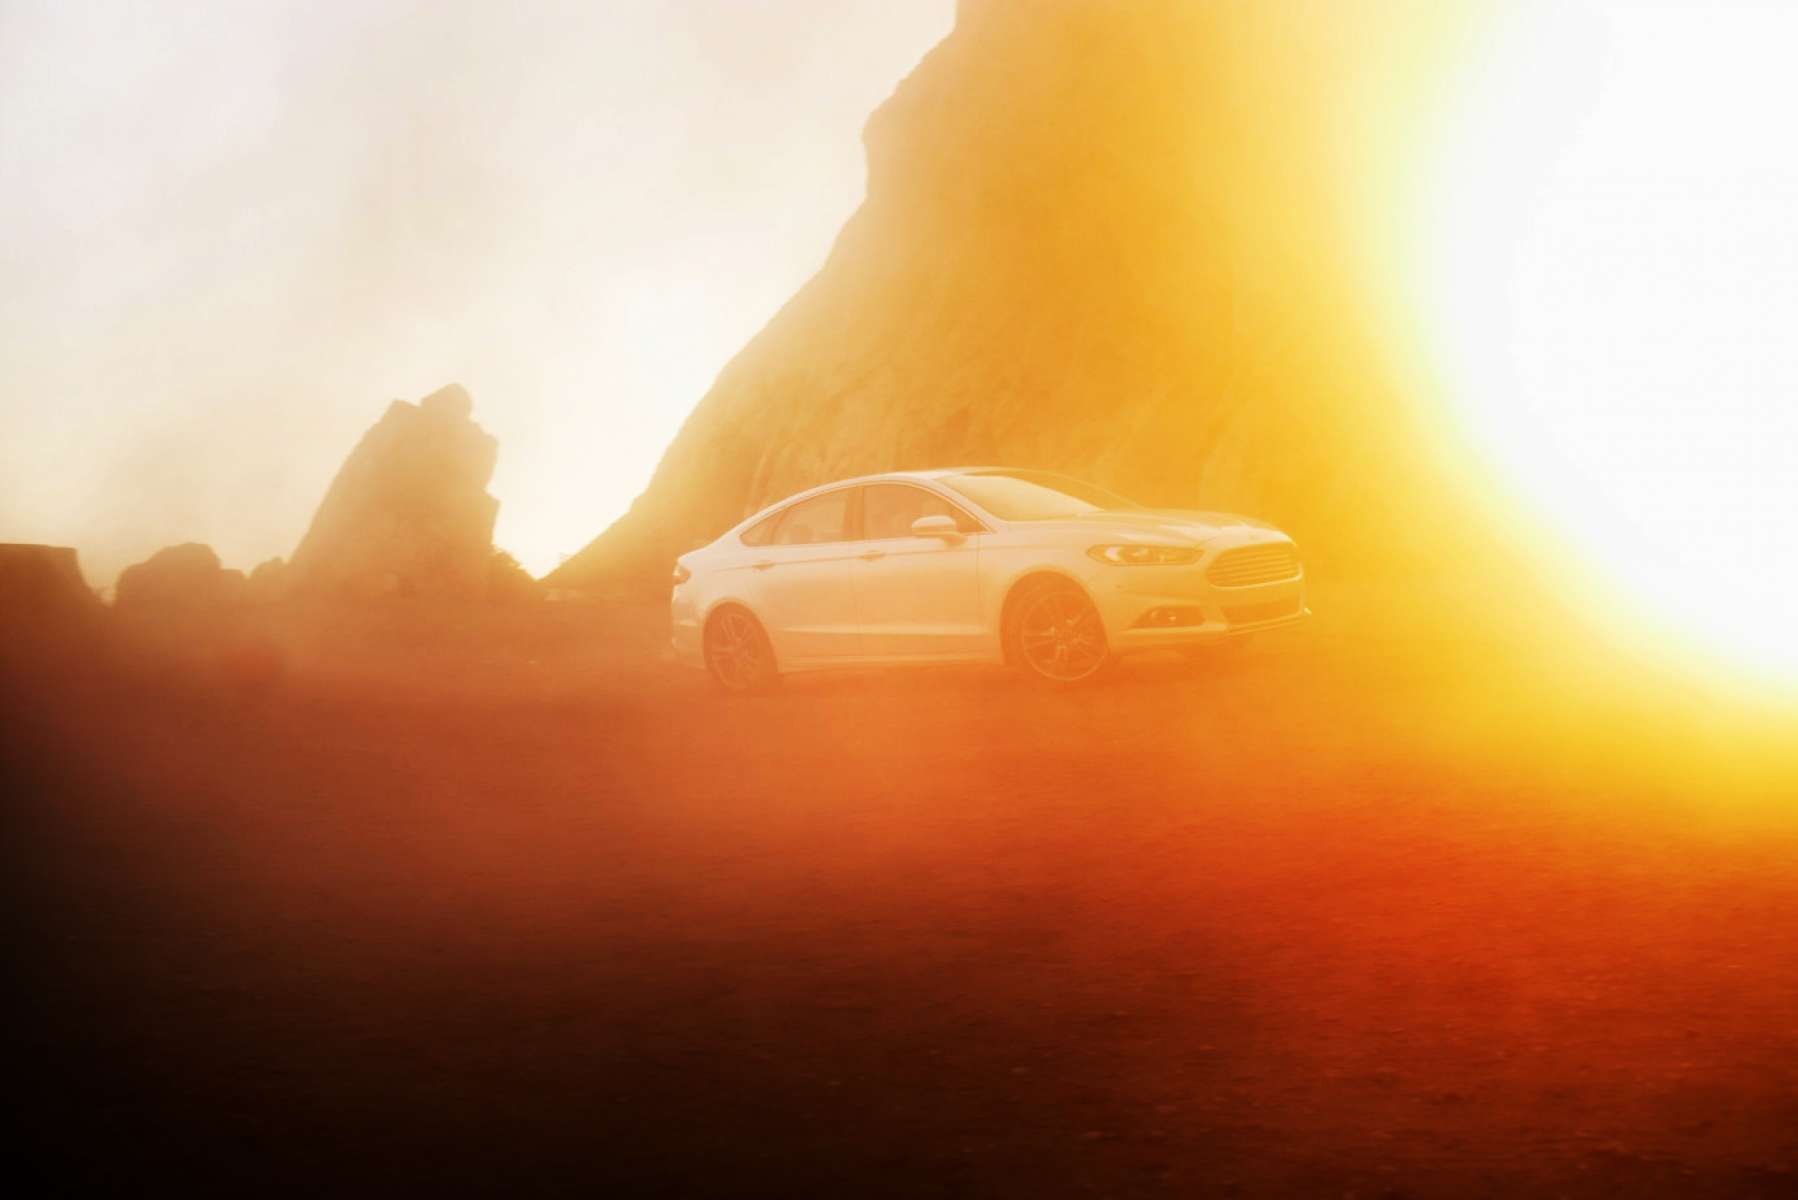 51f68674682c6_Christian_Kozowyk_white_car_sunset_flare